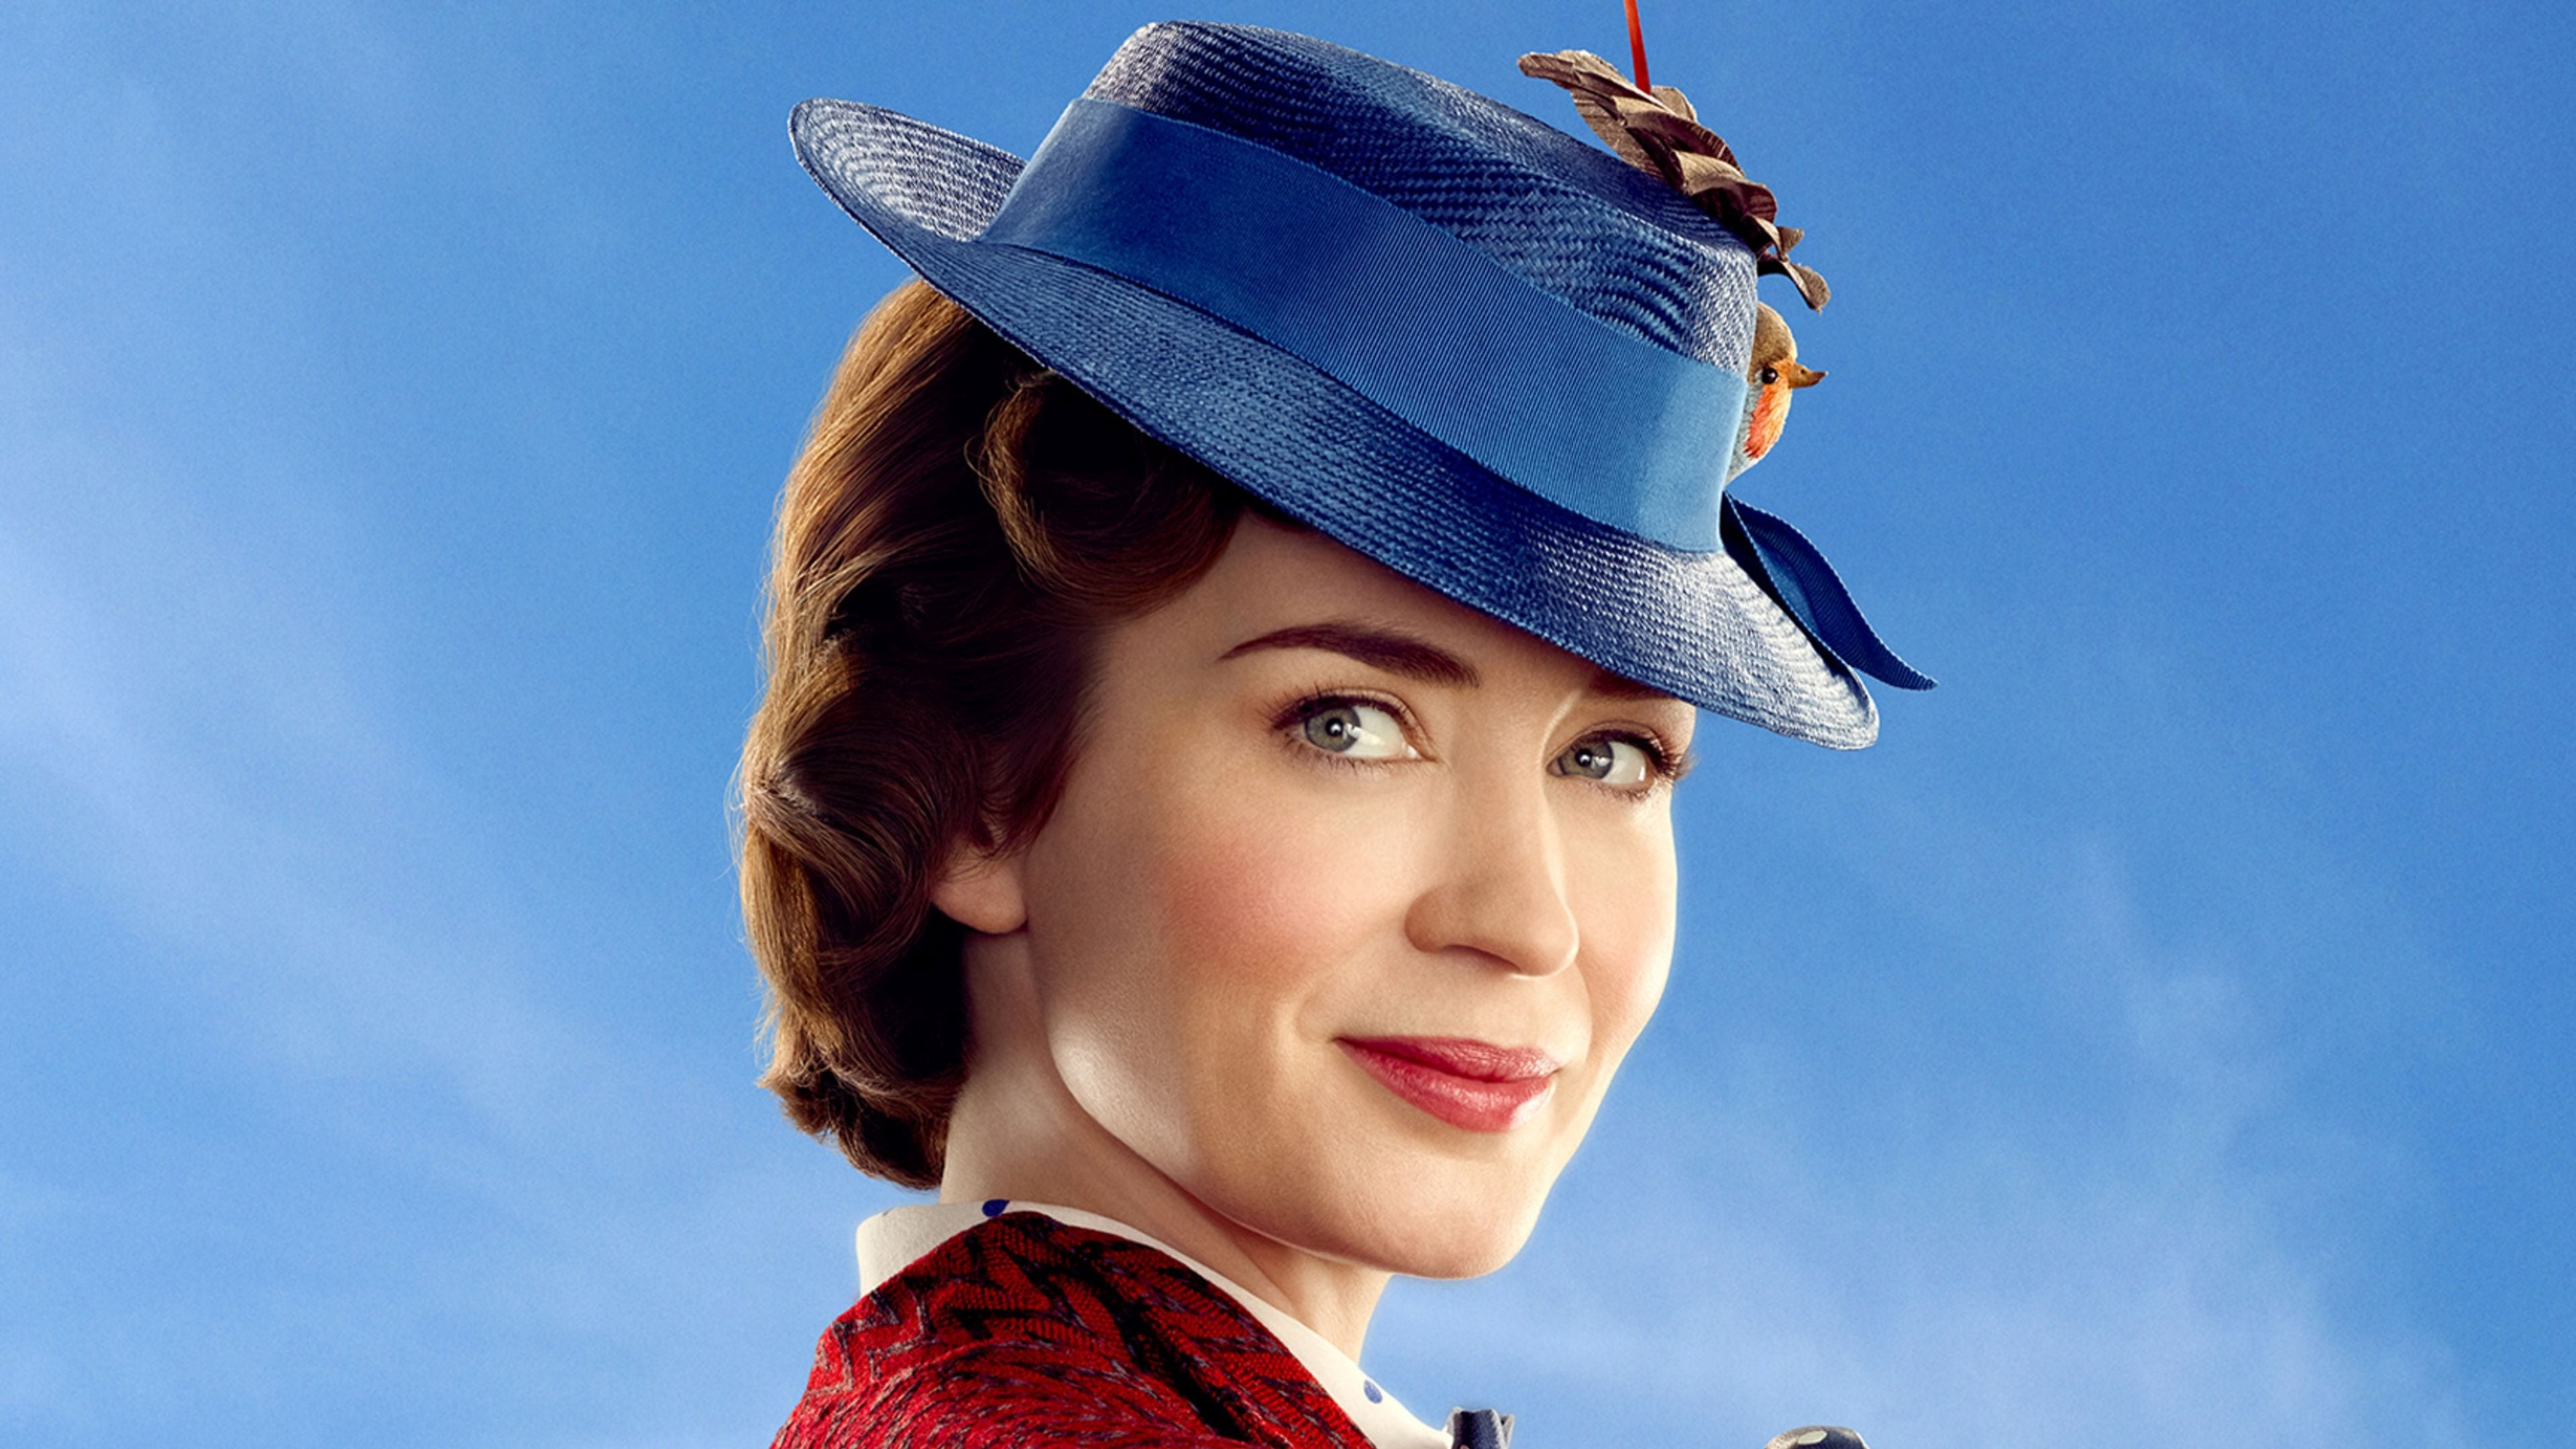 Watch Mary Poppins Returns (2018) full movie on Putlockertv